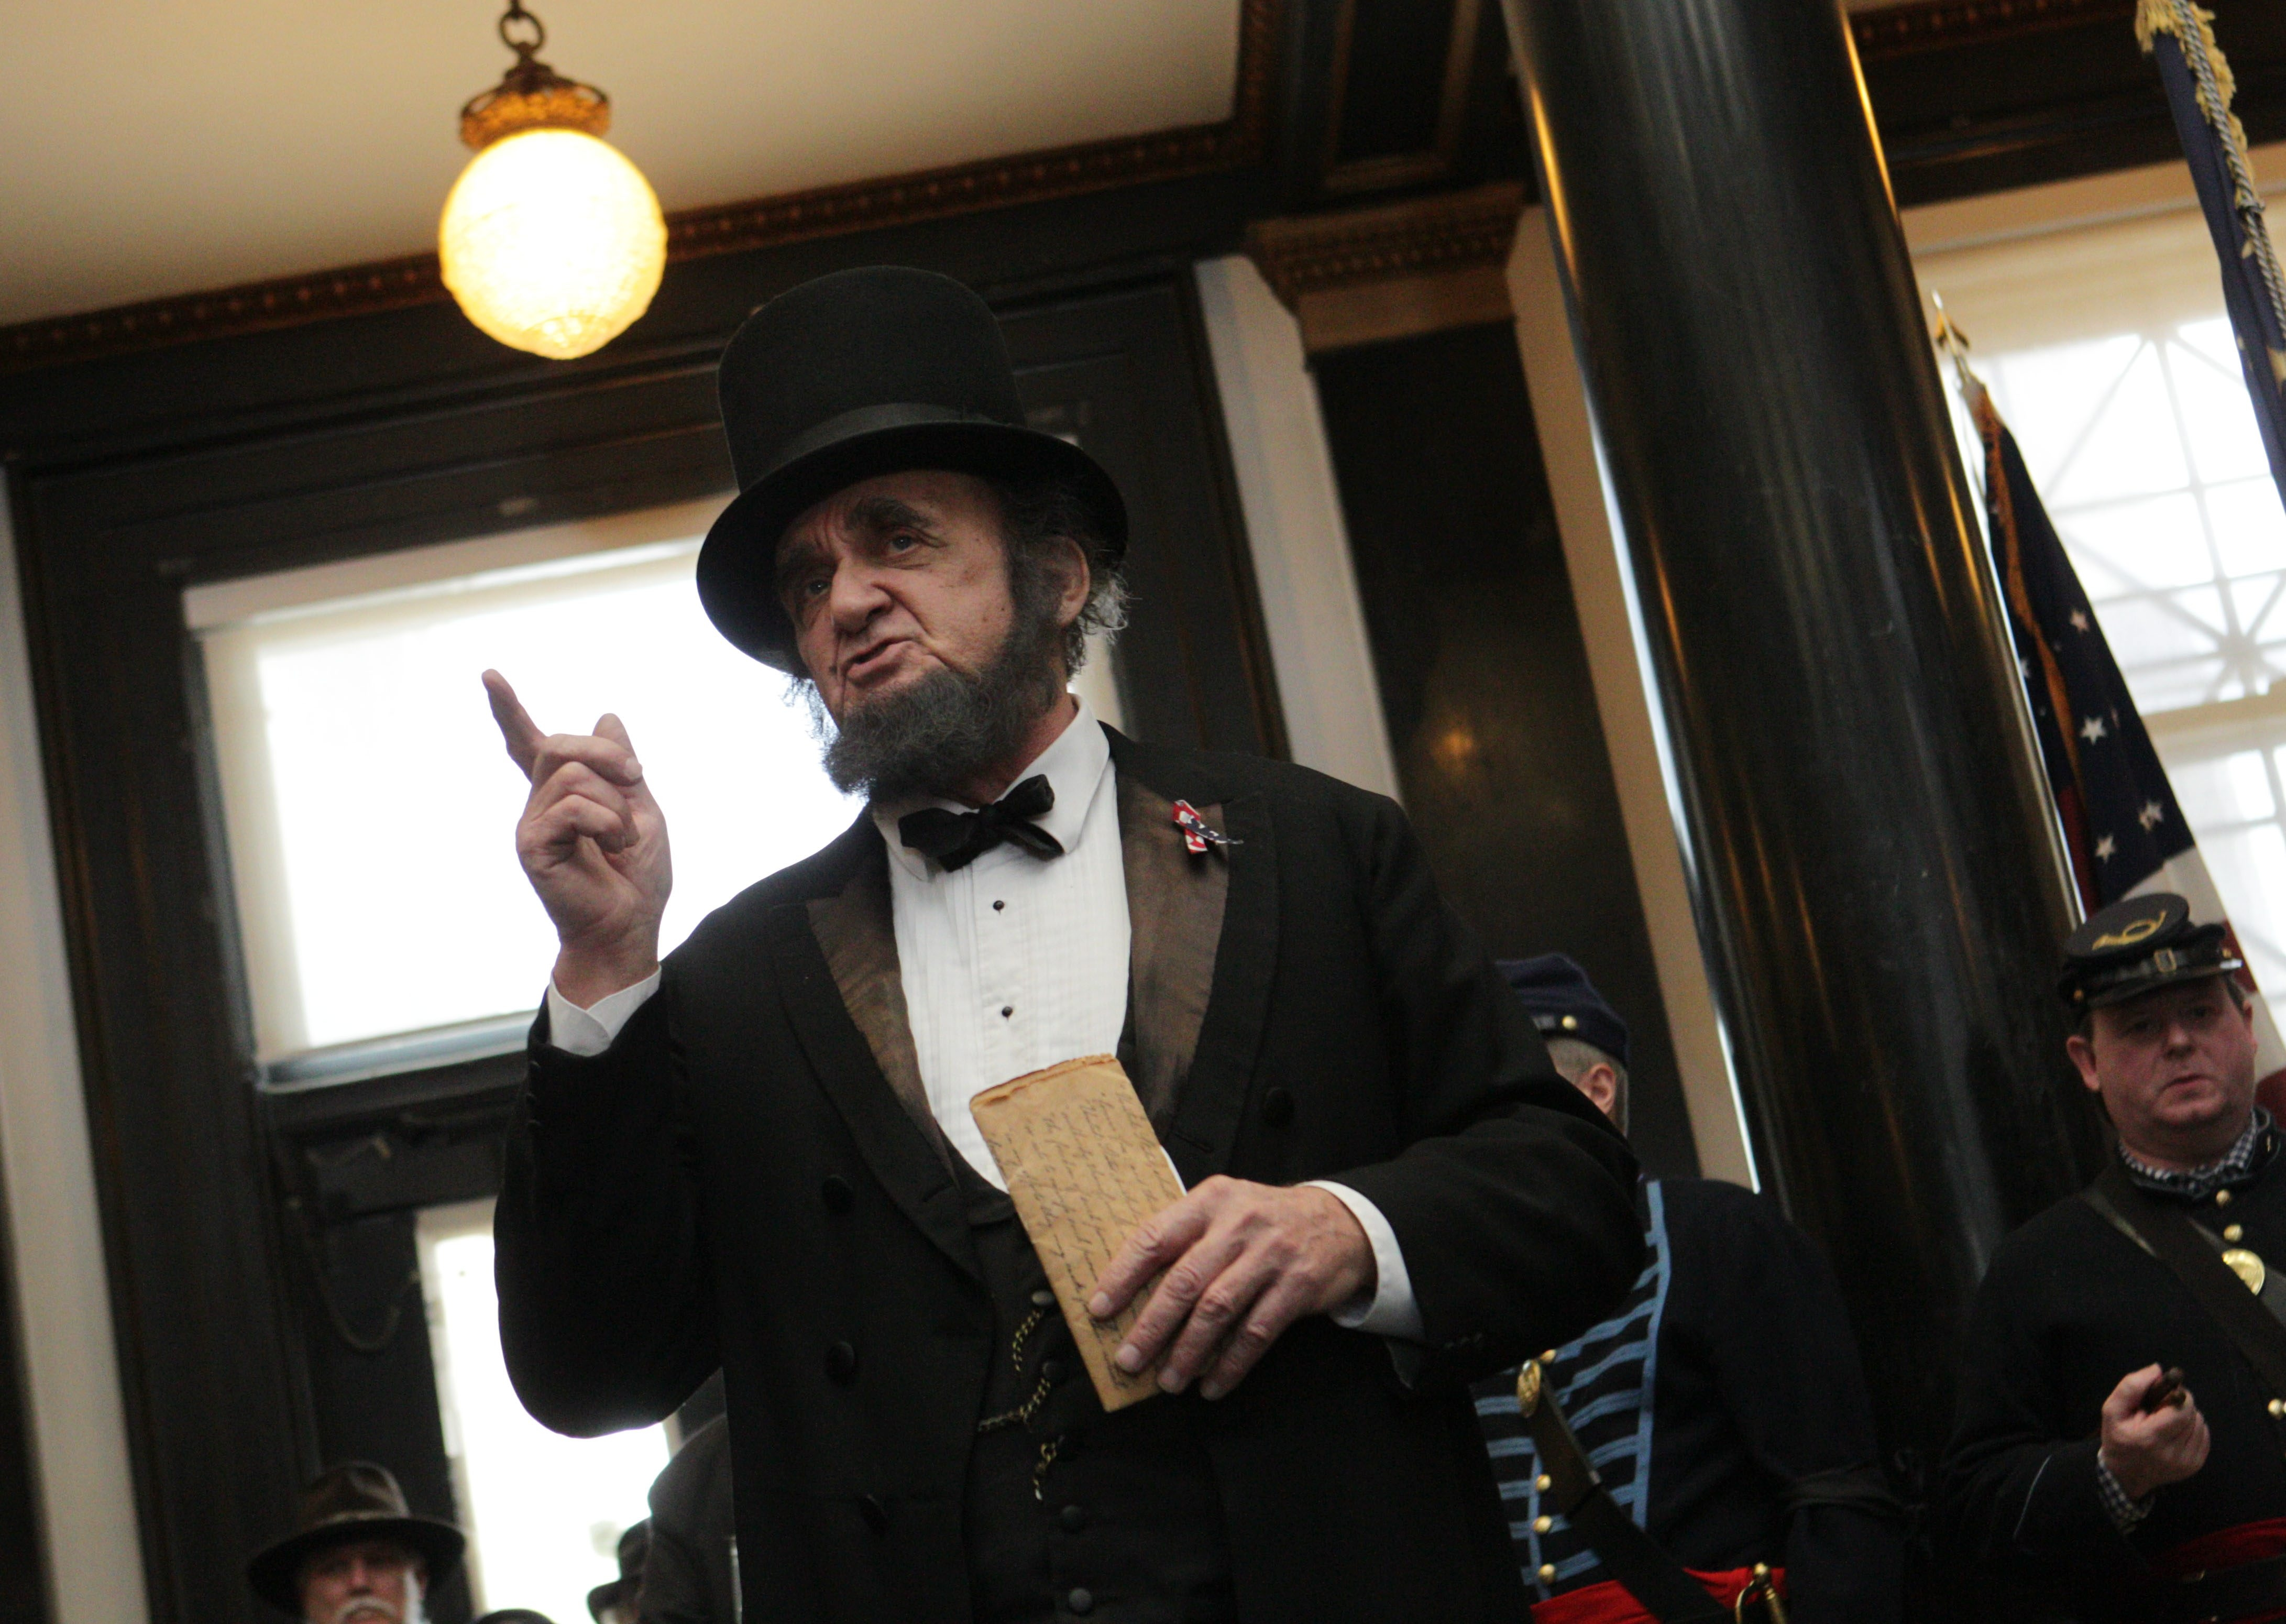 Lincoln re-enactor David Kreutz recites the Gettysburg Address for the crowd assembled in the Buffalo History Museum's central court.